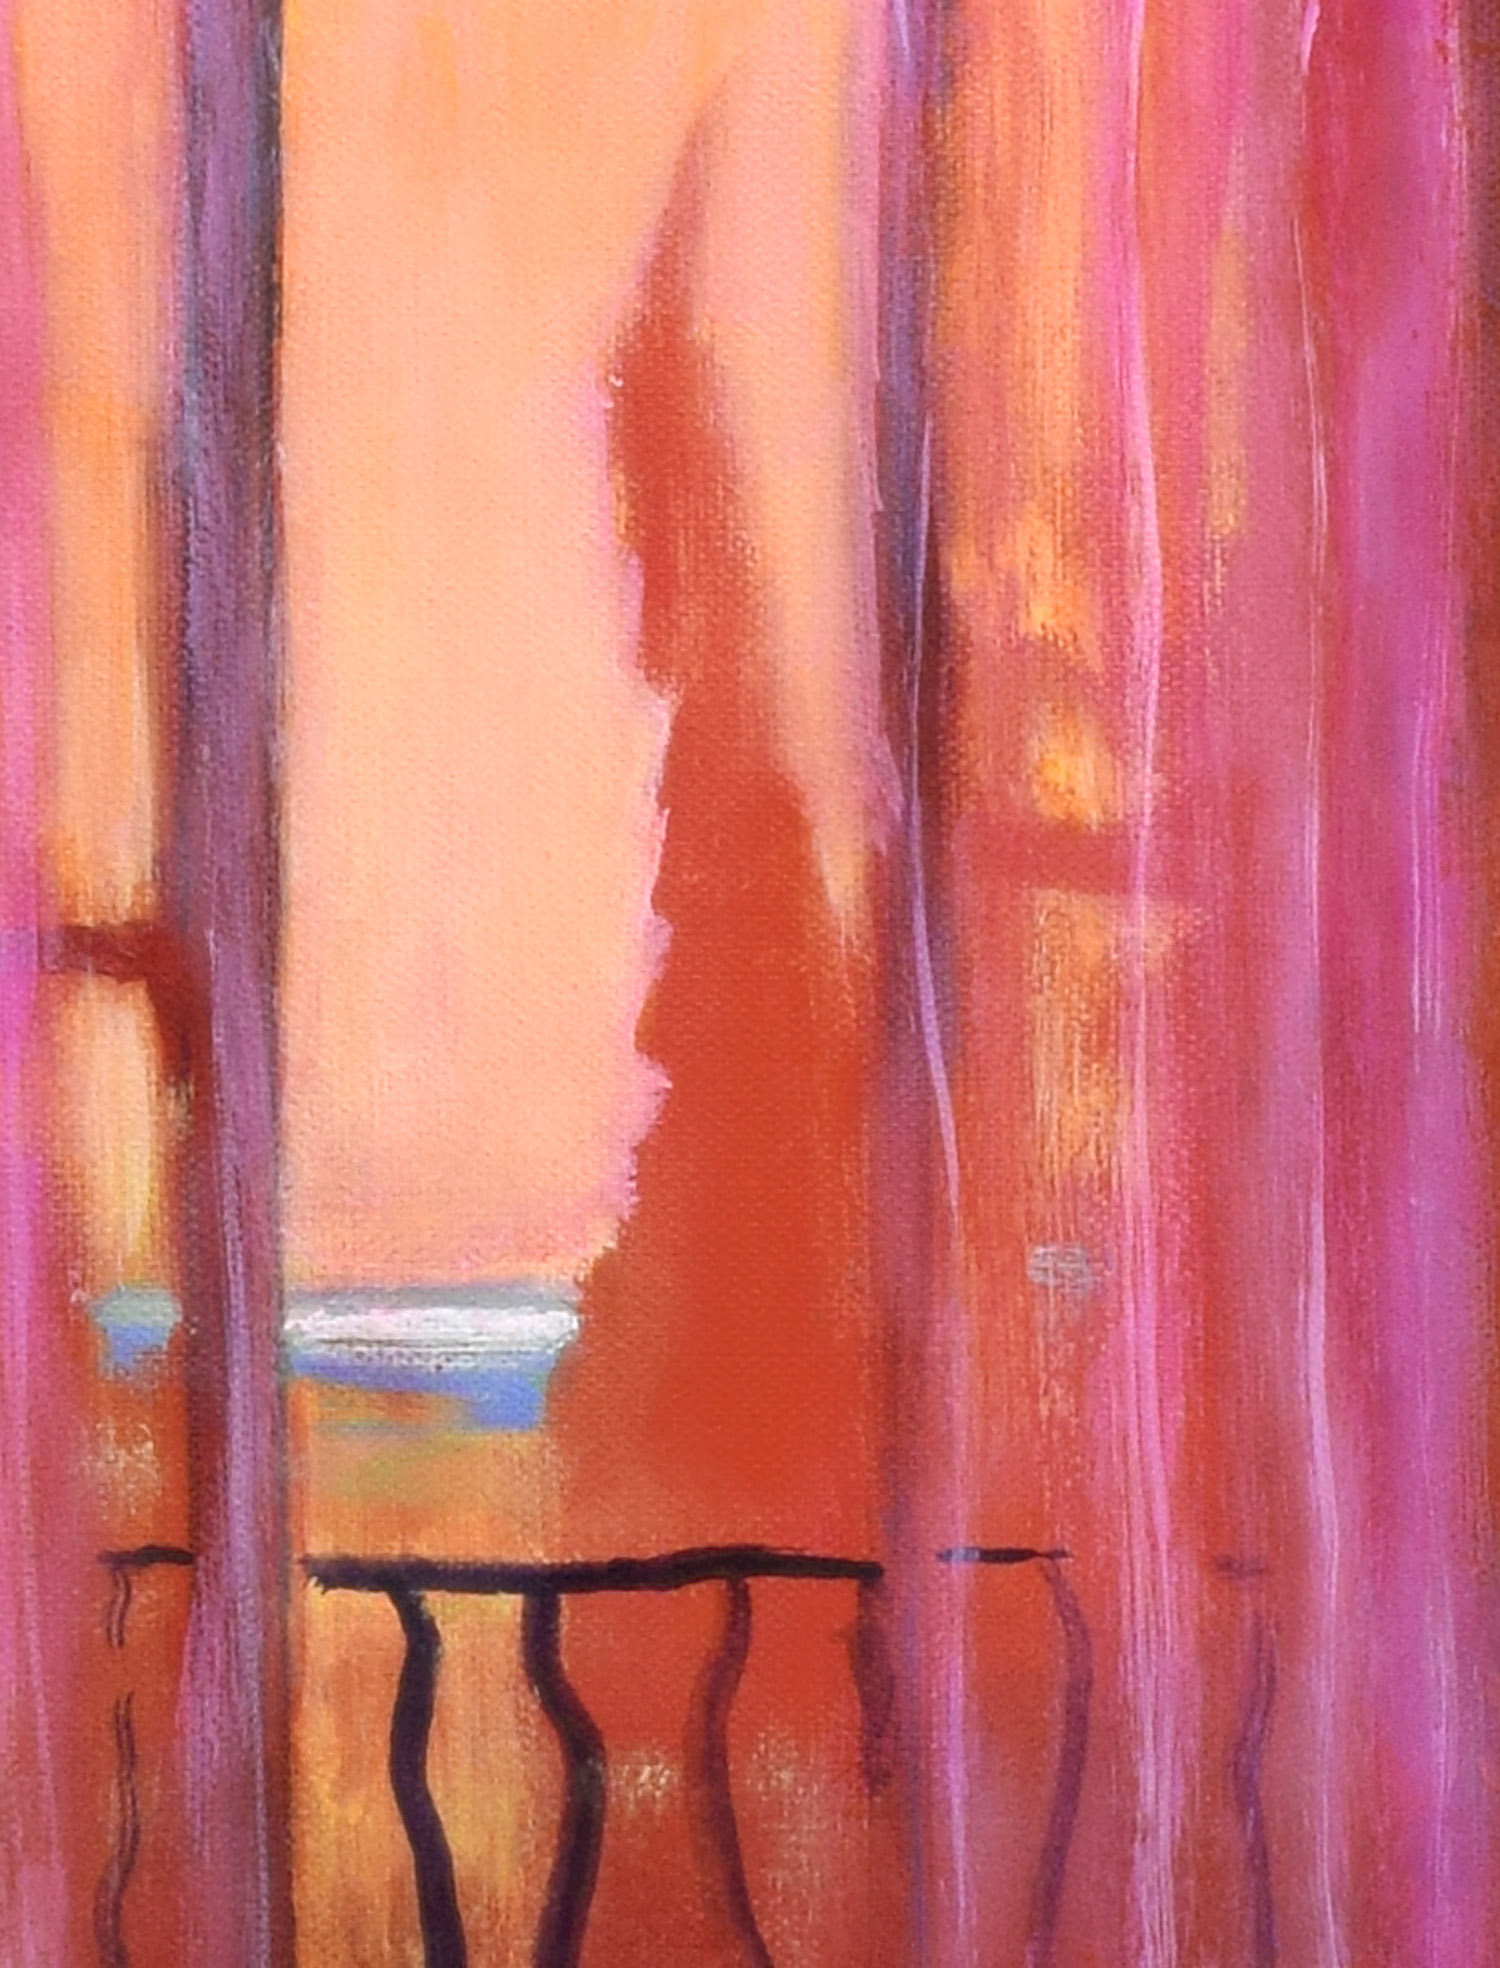 Detail with open window from Summer Evening, Vence by John O'Grady